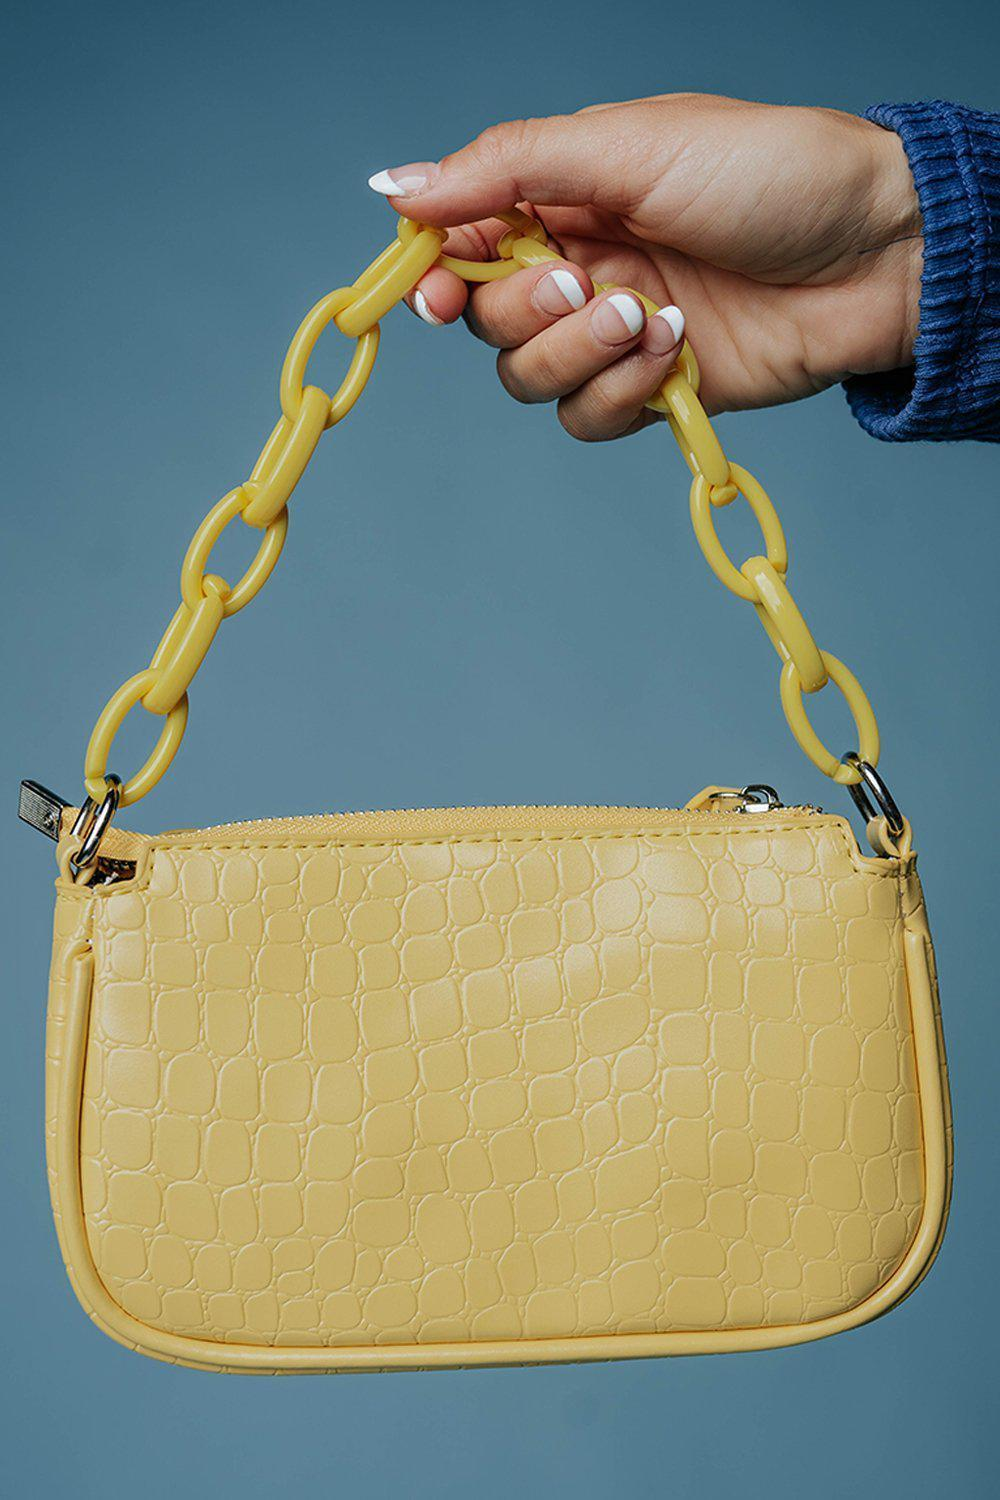 In a While Crocodile Shoulder Bag in Yellow-Accessory-Appleblossom-OS-Clad & Cloth